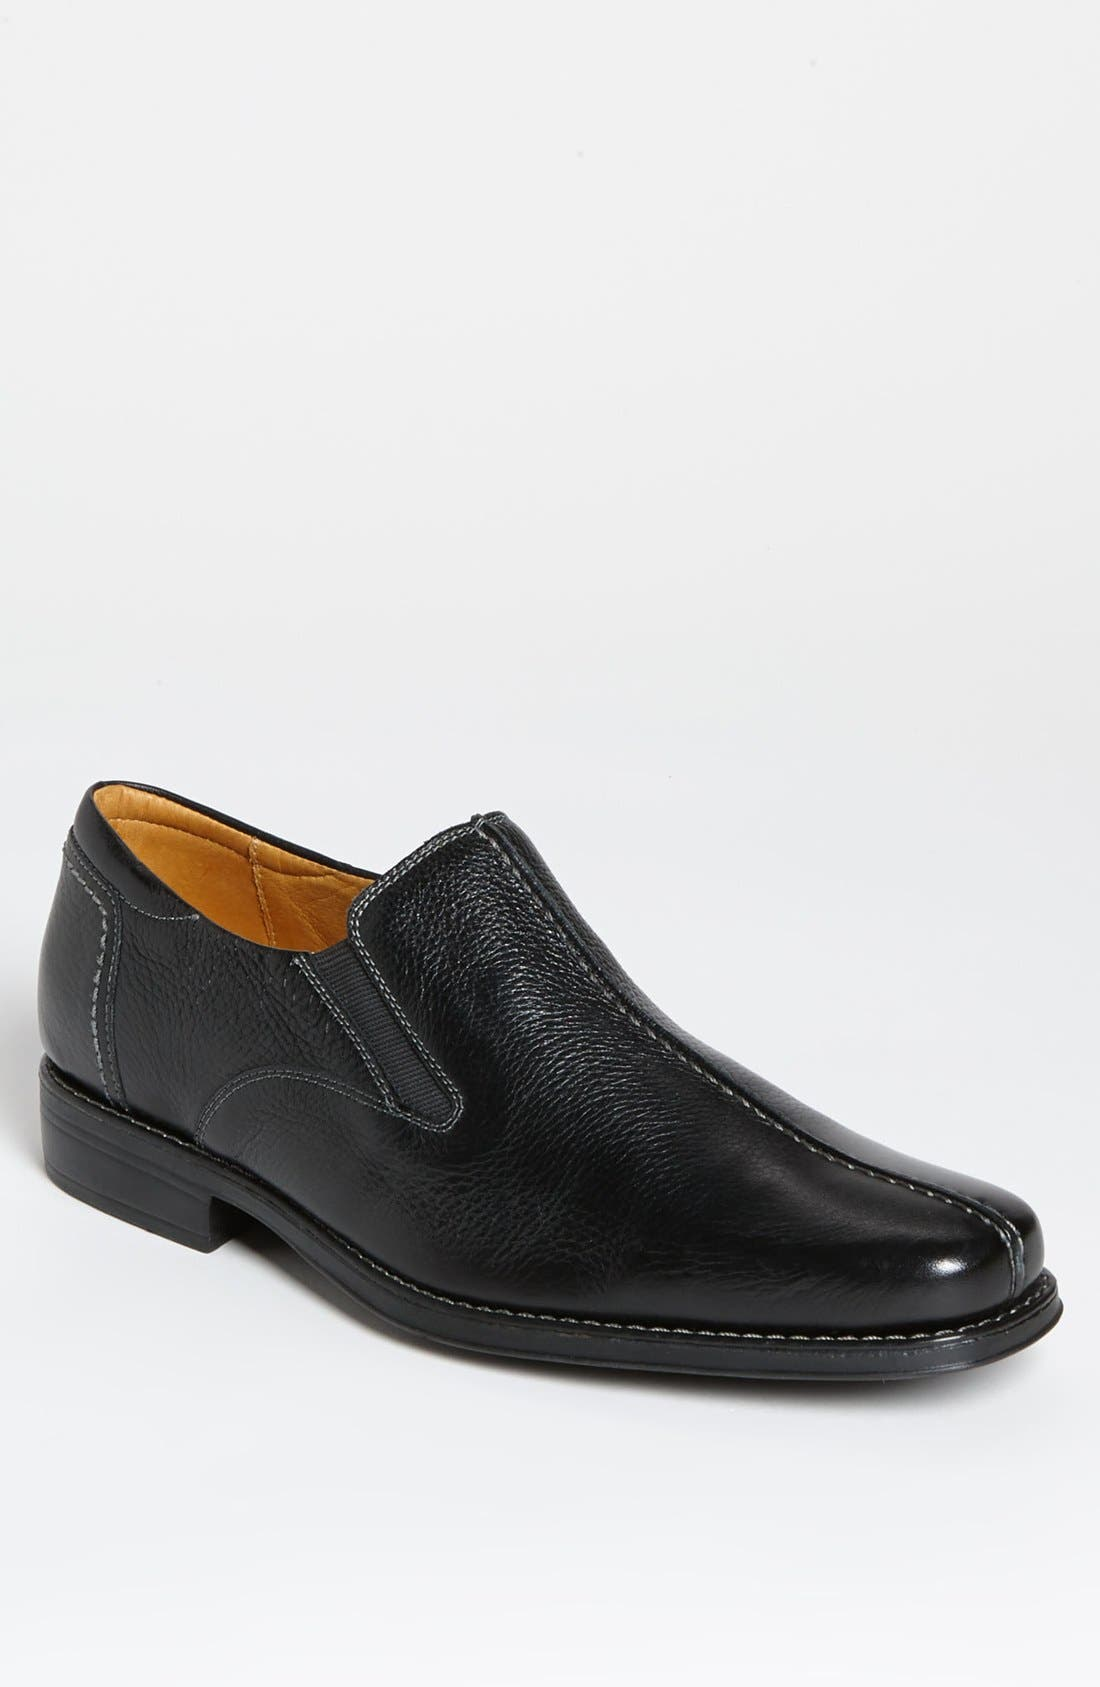 'Tampa' Loafer,                         Main,                         color, BLACK